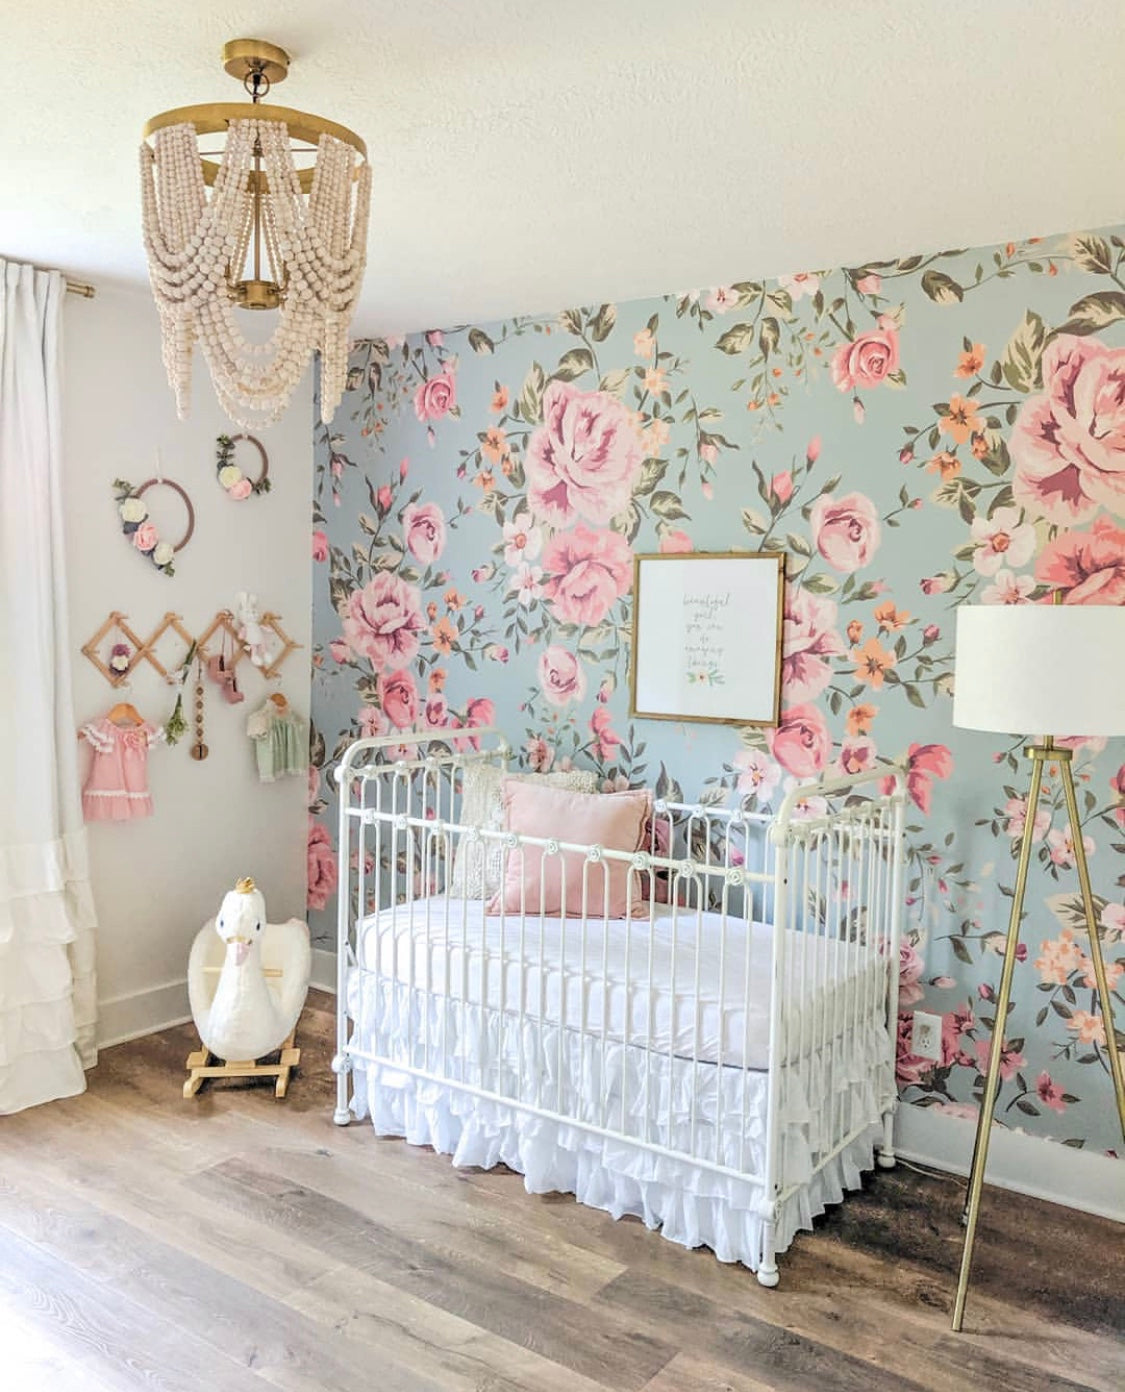 Vintage Floral Cutesie Wallpaper Anewall Mural Wallpapers